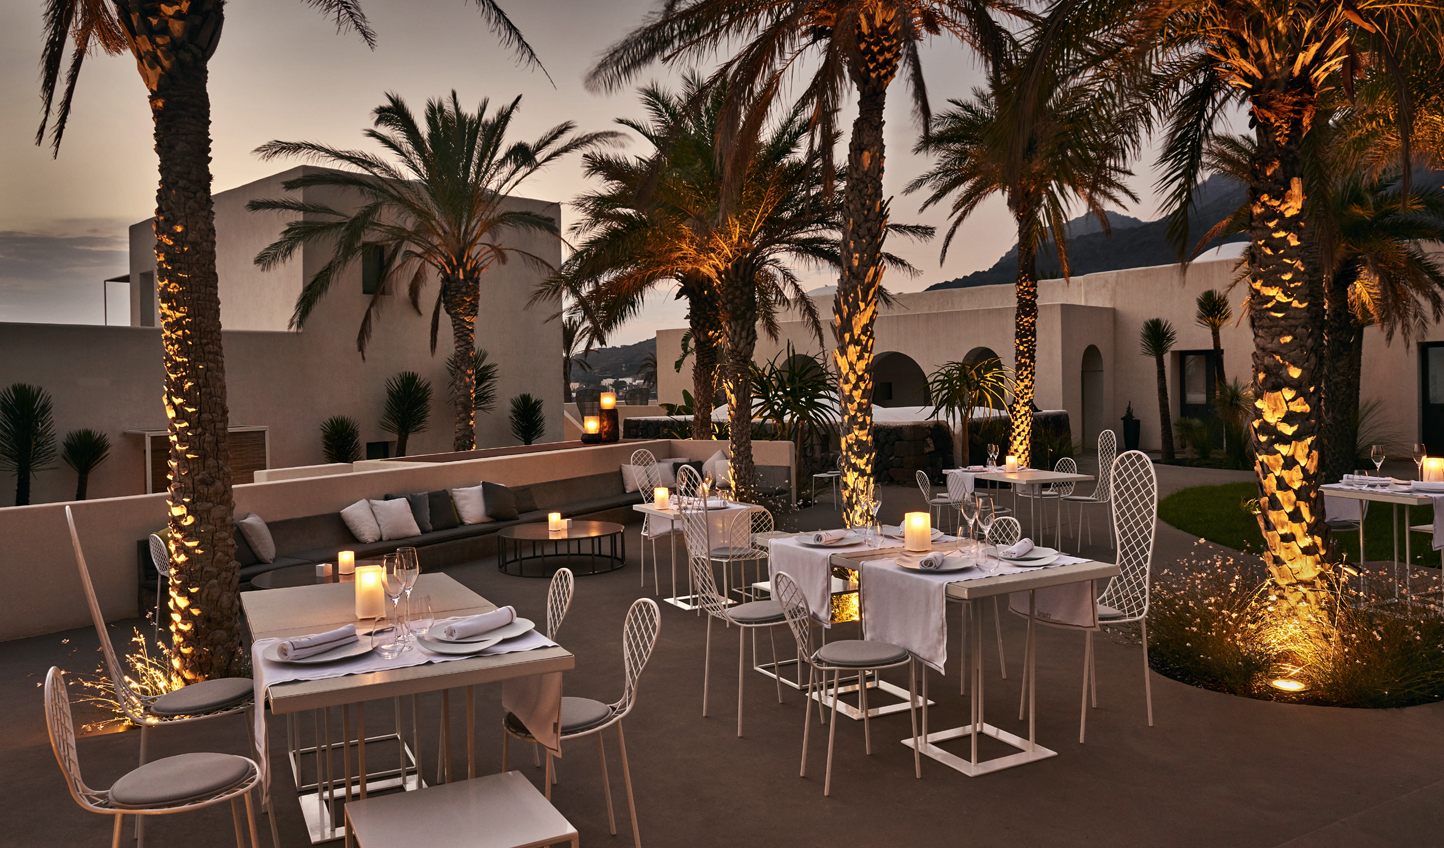 Dine out beneath the stars and amid the palms